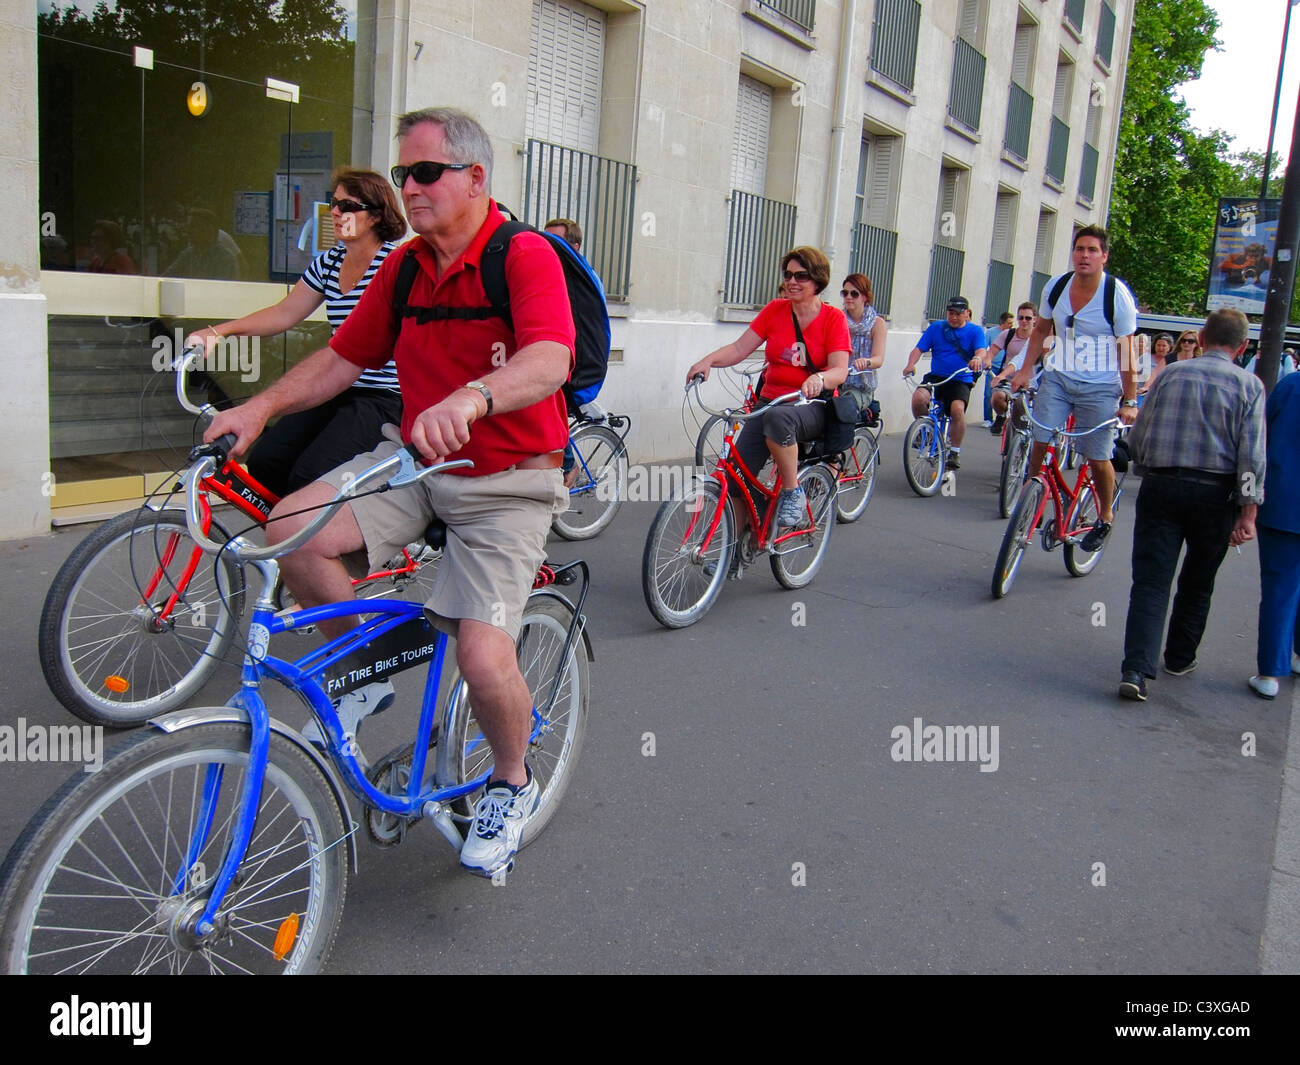 Versailles, France, Urban Street Scenes, Group Senior Tourists Riding Rented Bicycles - Stock Image